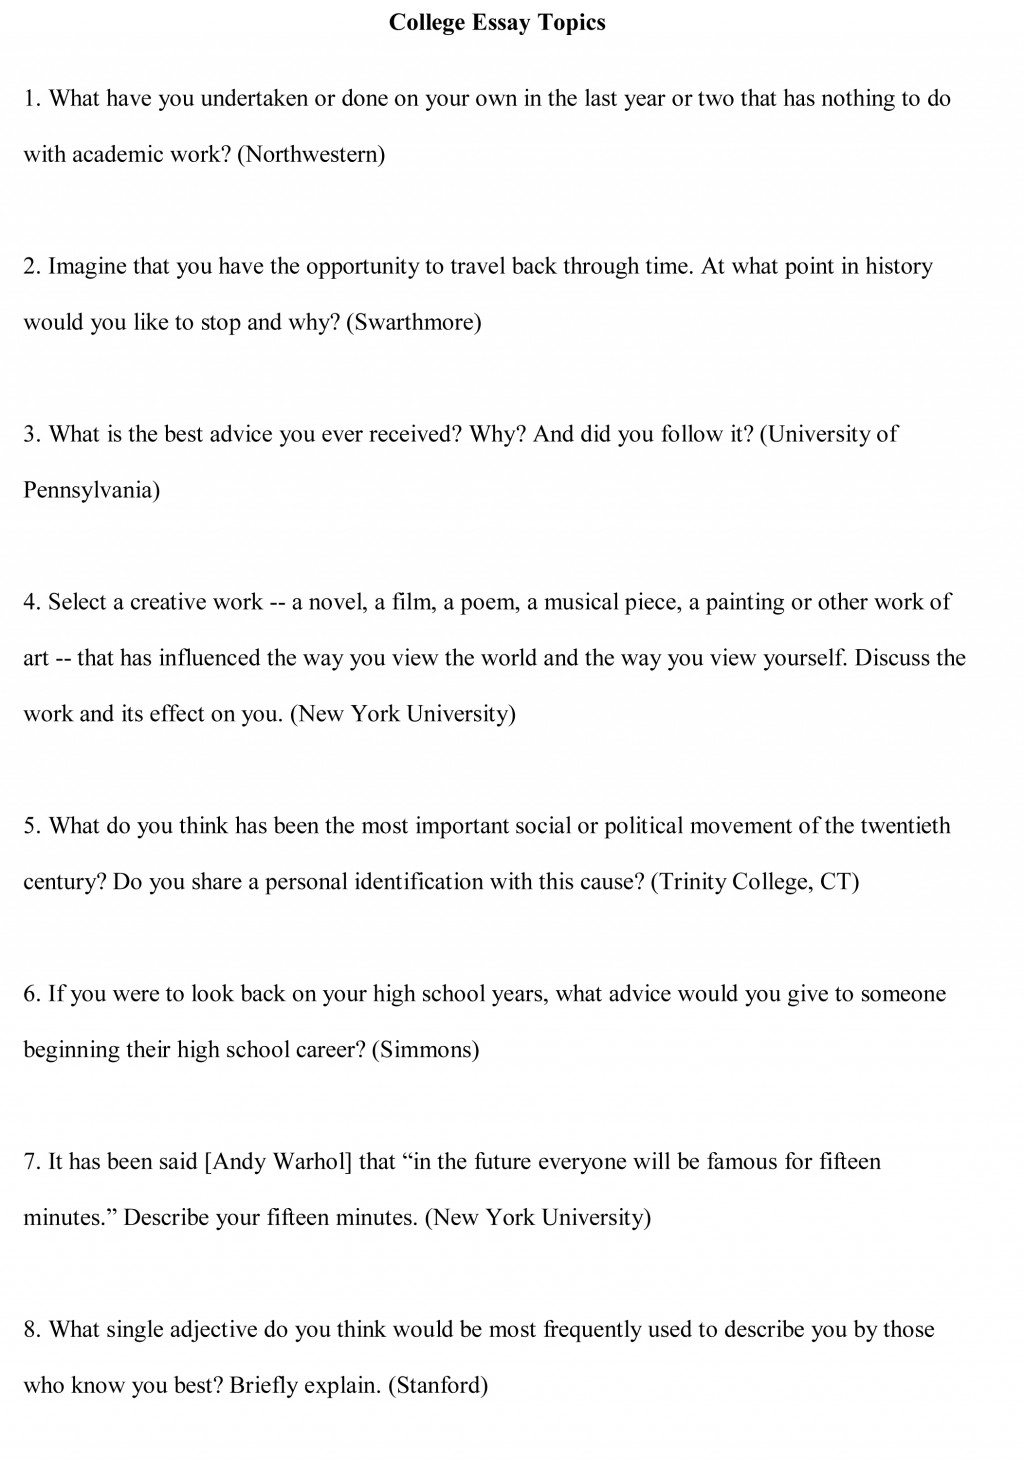 003 College Essay Topics Free Sample1 Example Topic Rare Ideas Admission Persuasive For Large